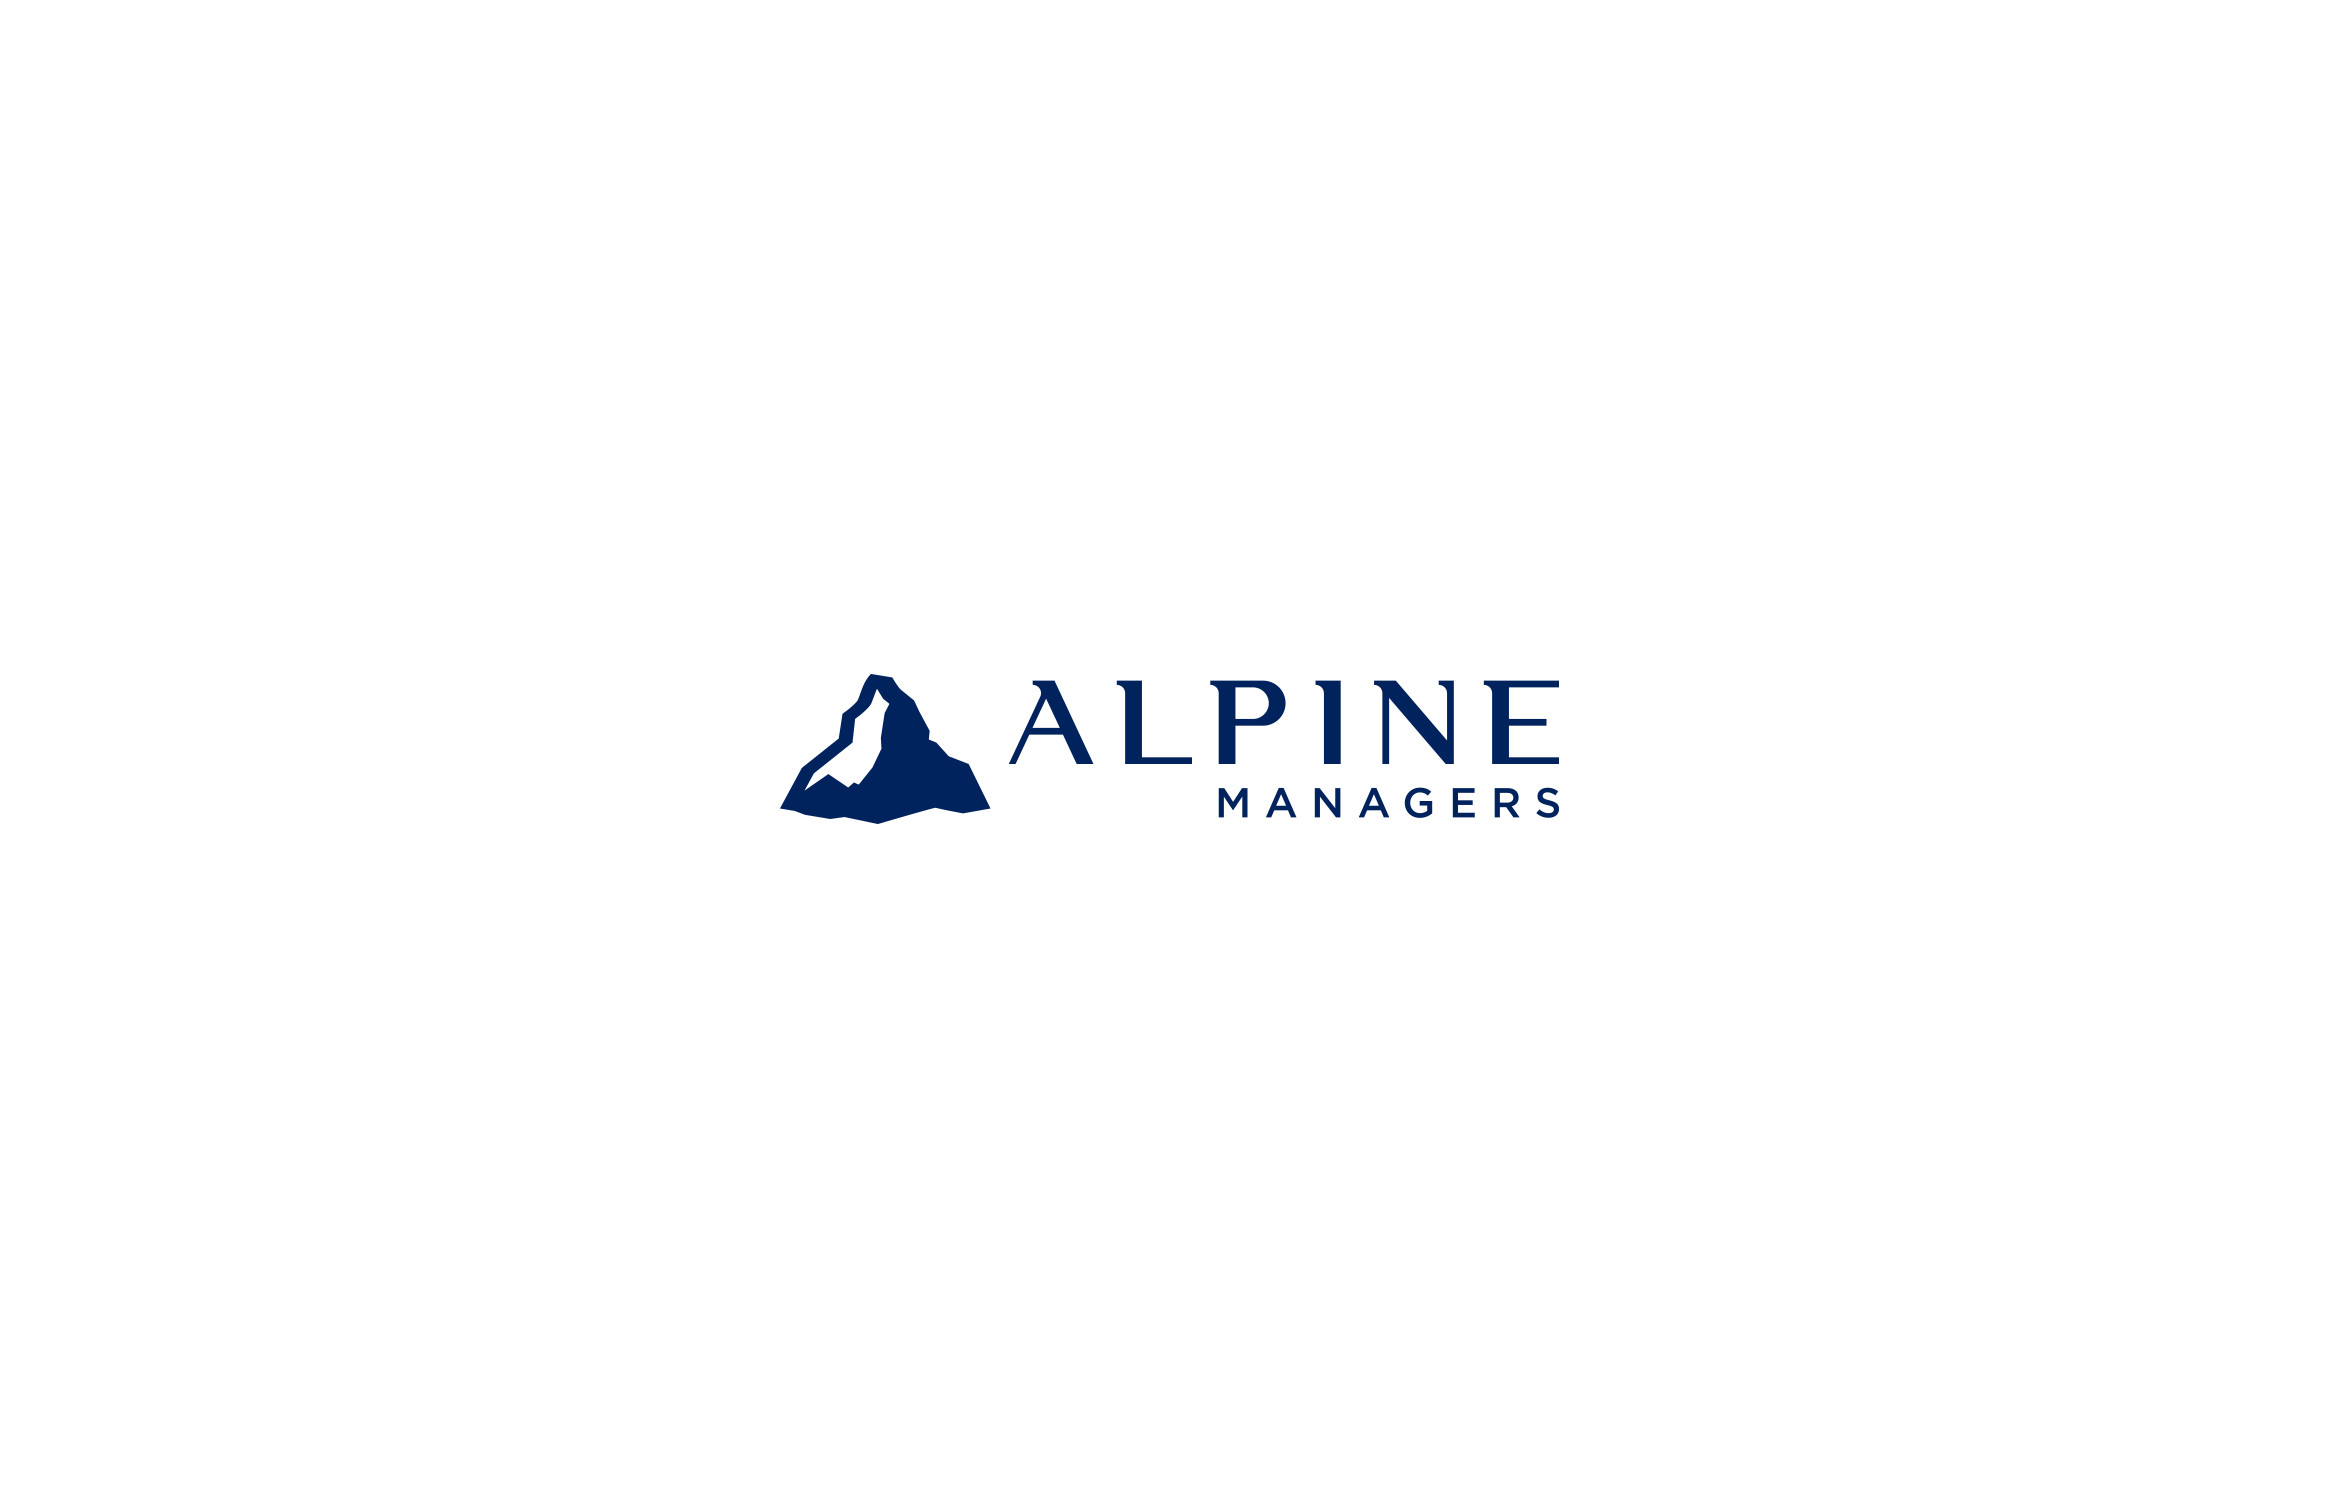 logo_alpinemanagers